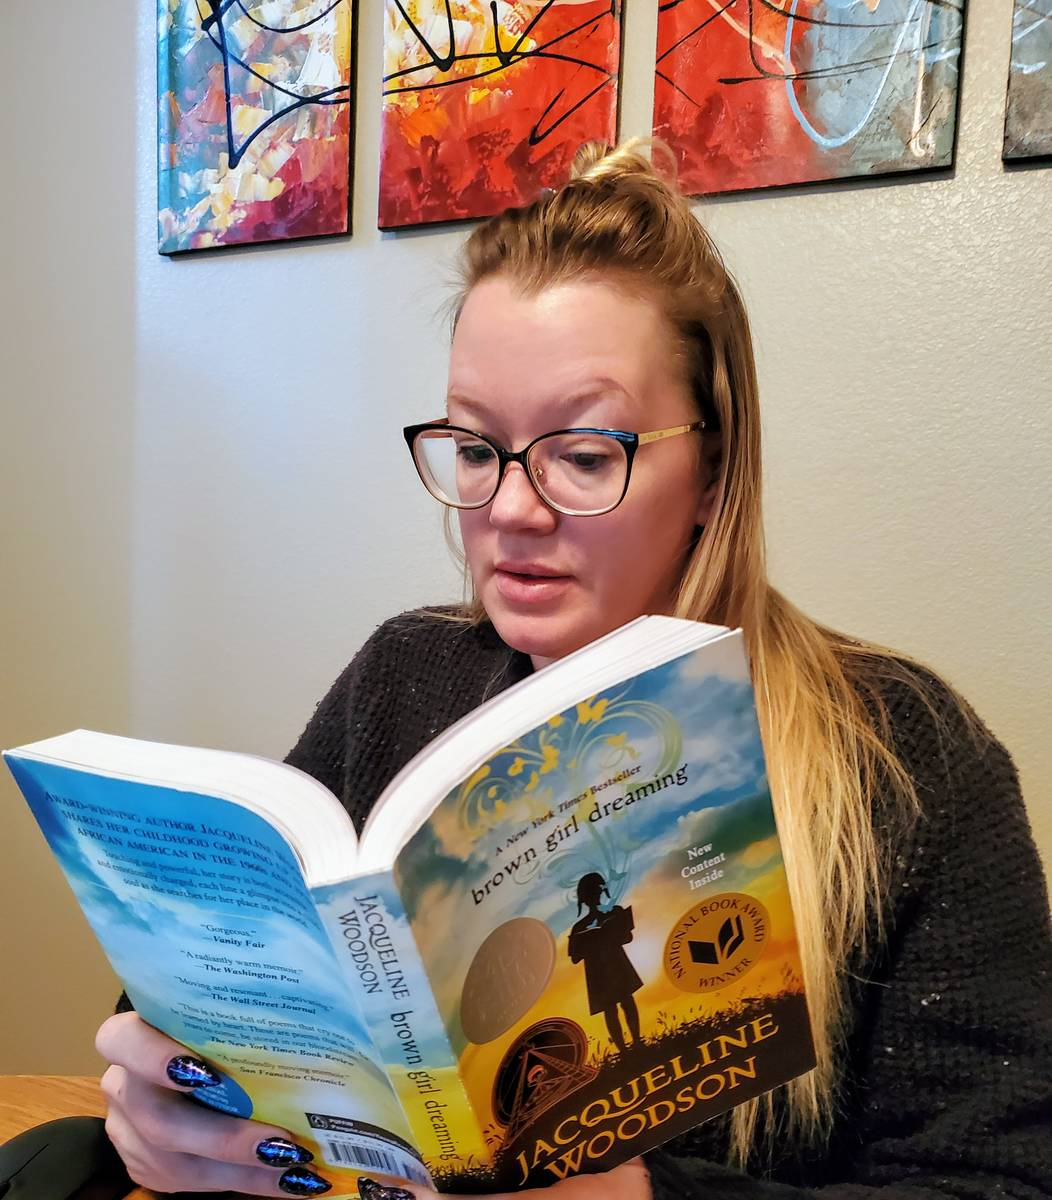 Ashley Price, a teacher at Monaco Middle School in Las Vegas, reads one of the books she reques ...